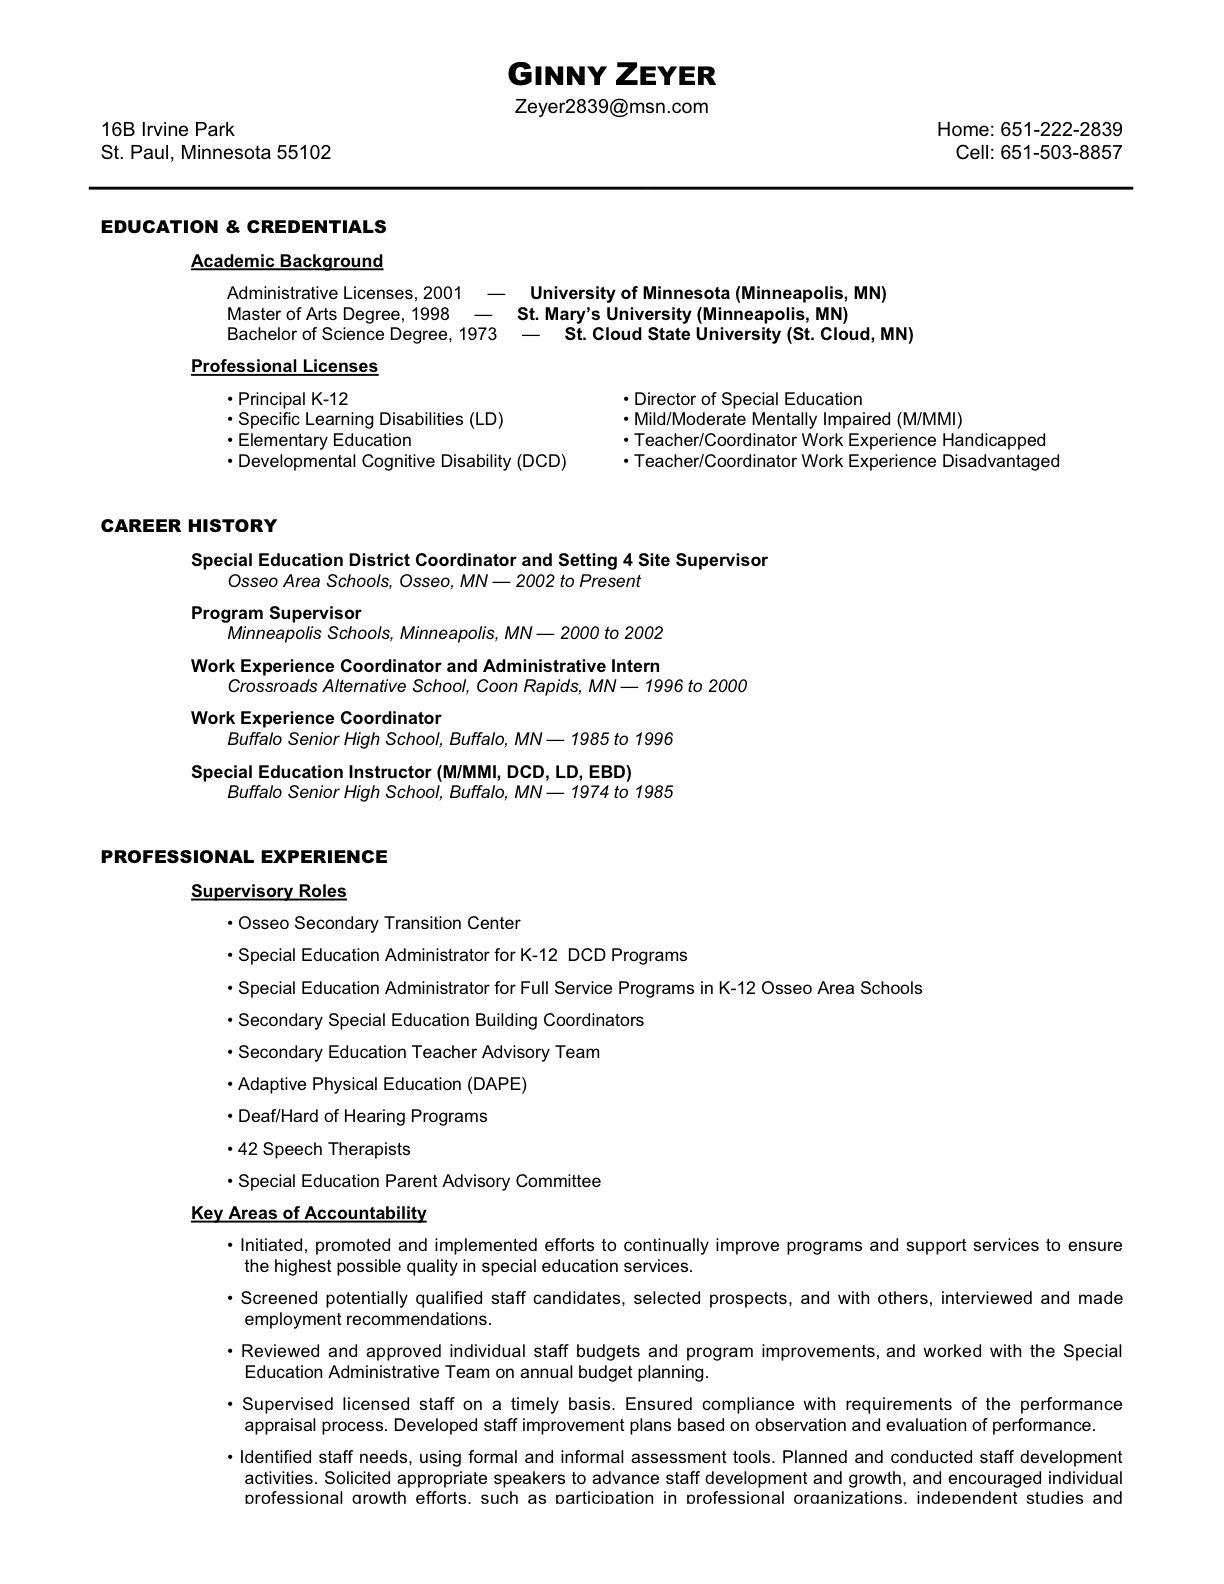 resume education and qualifications resume templates resume education and qualifications resume templates professional cv format